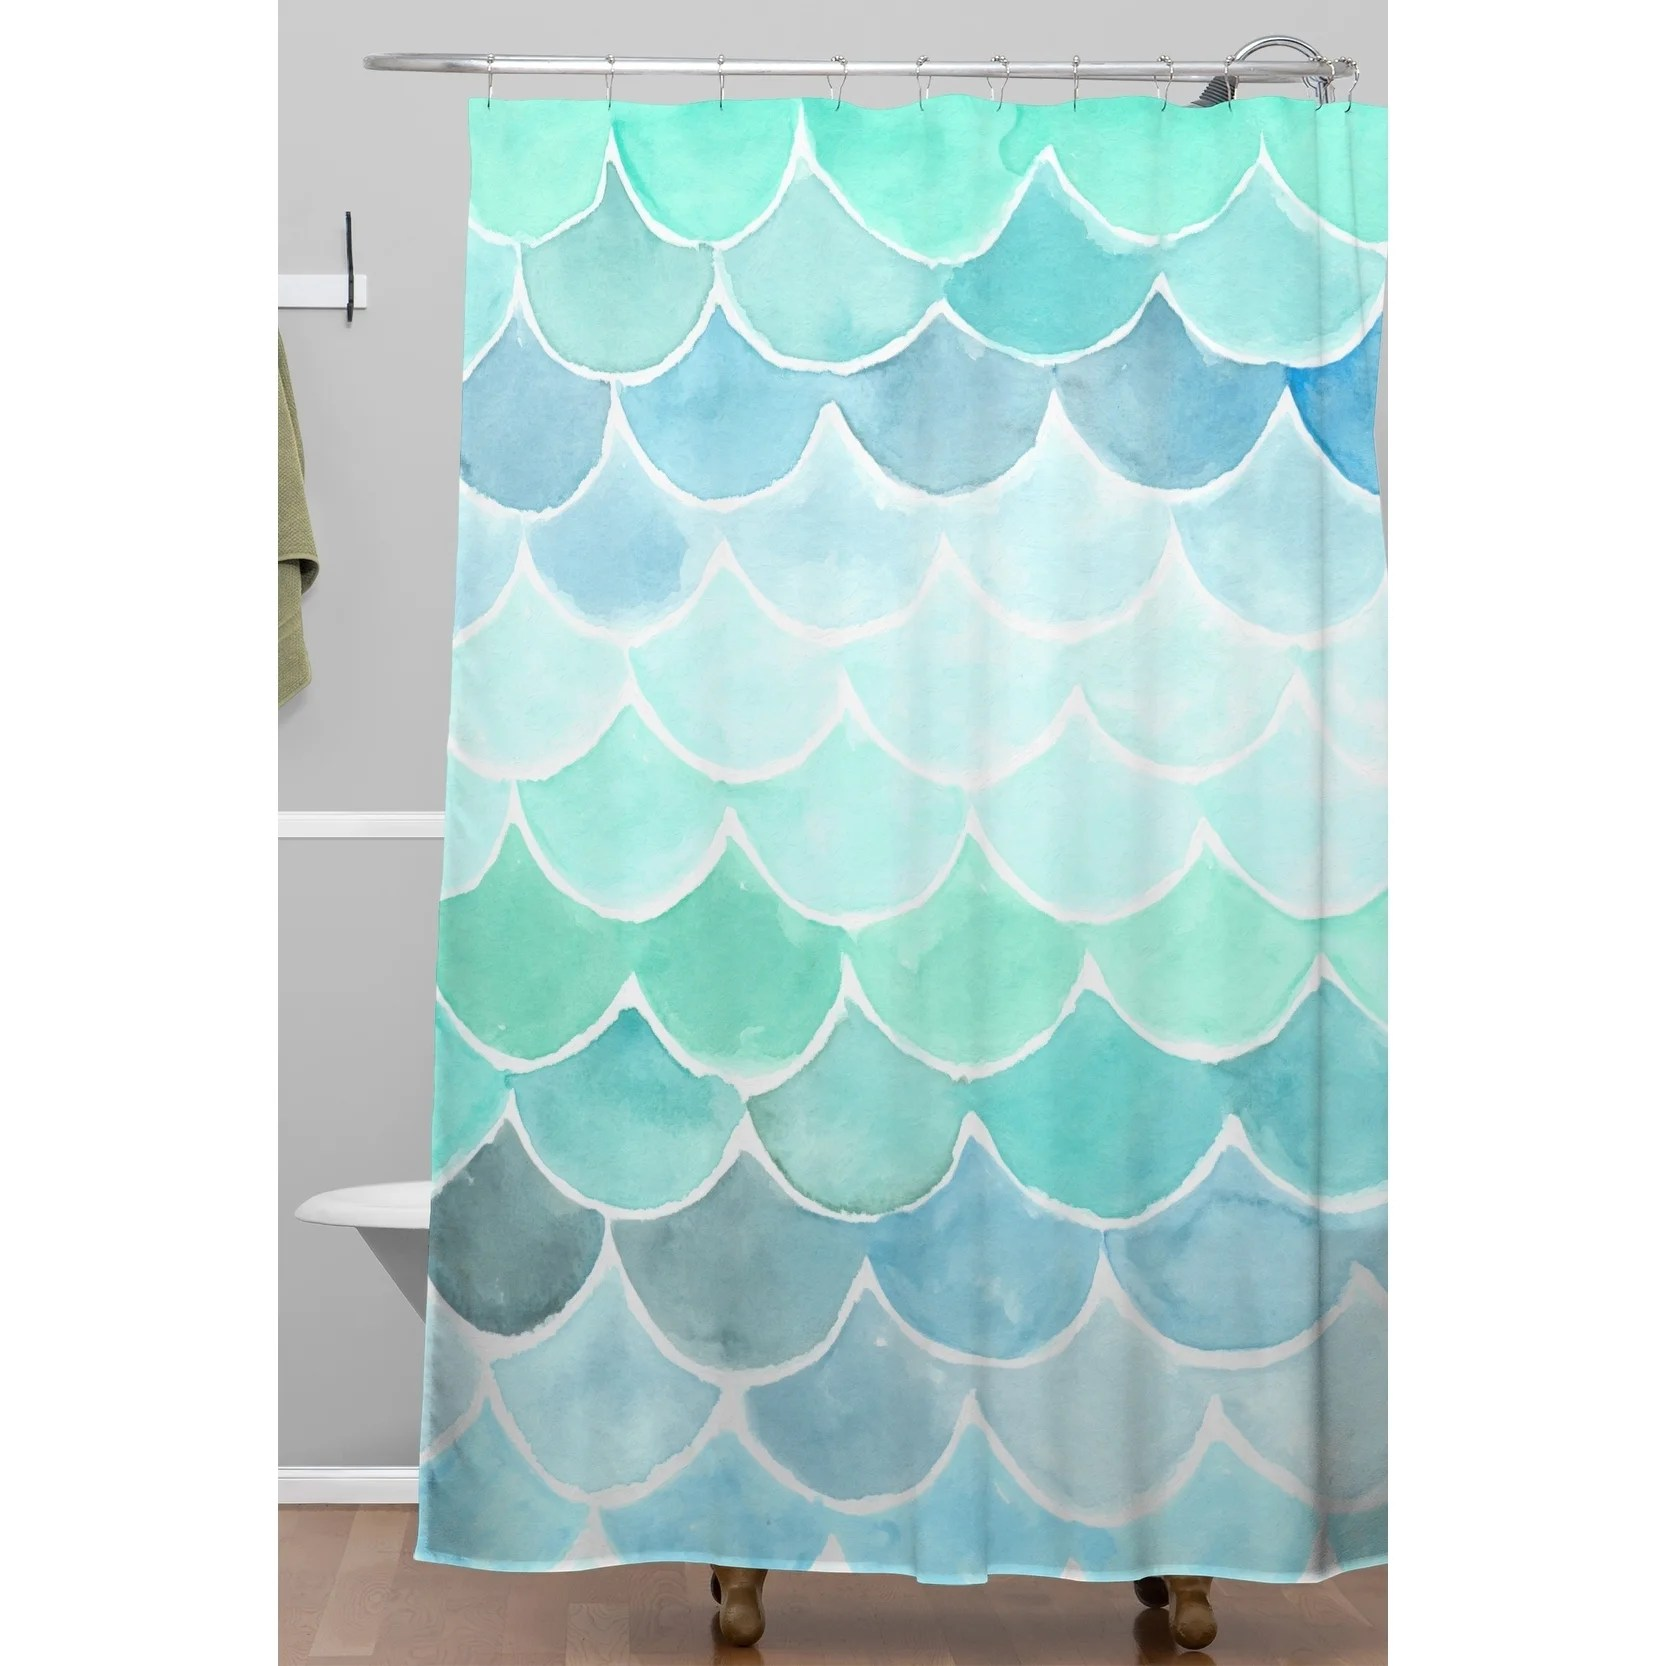 Mermaid Scale Shower Curtain Wonder Forest Mermaid Scales Shower Curtain